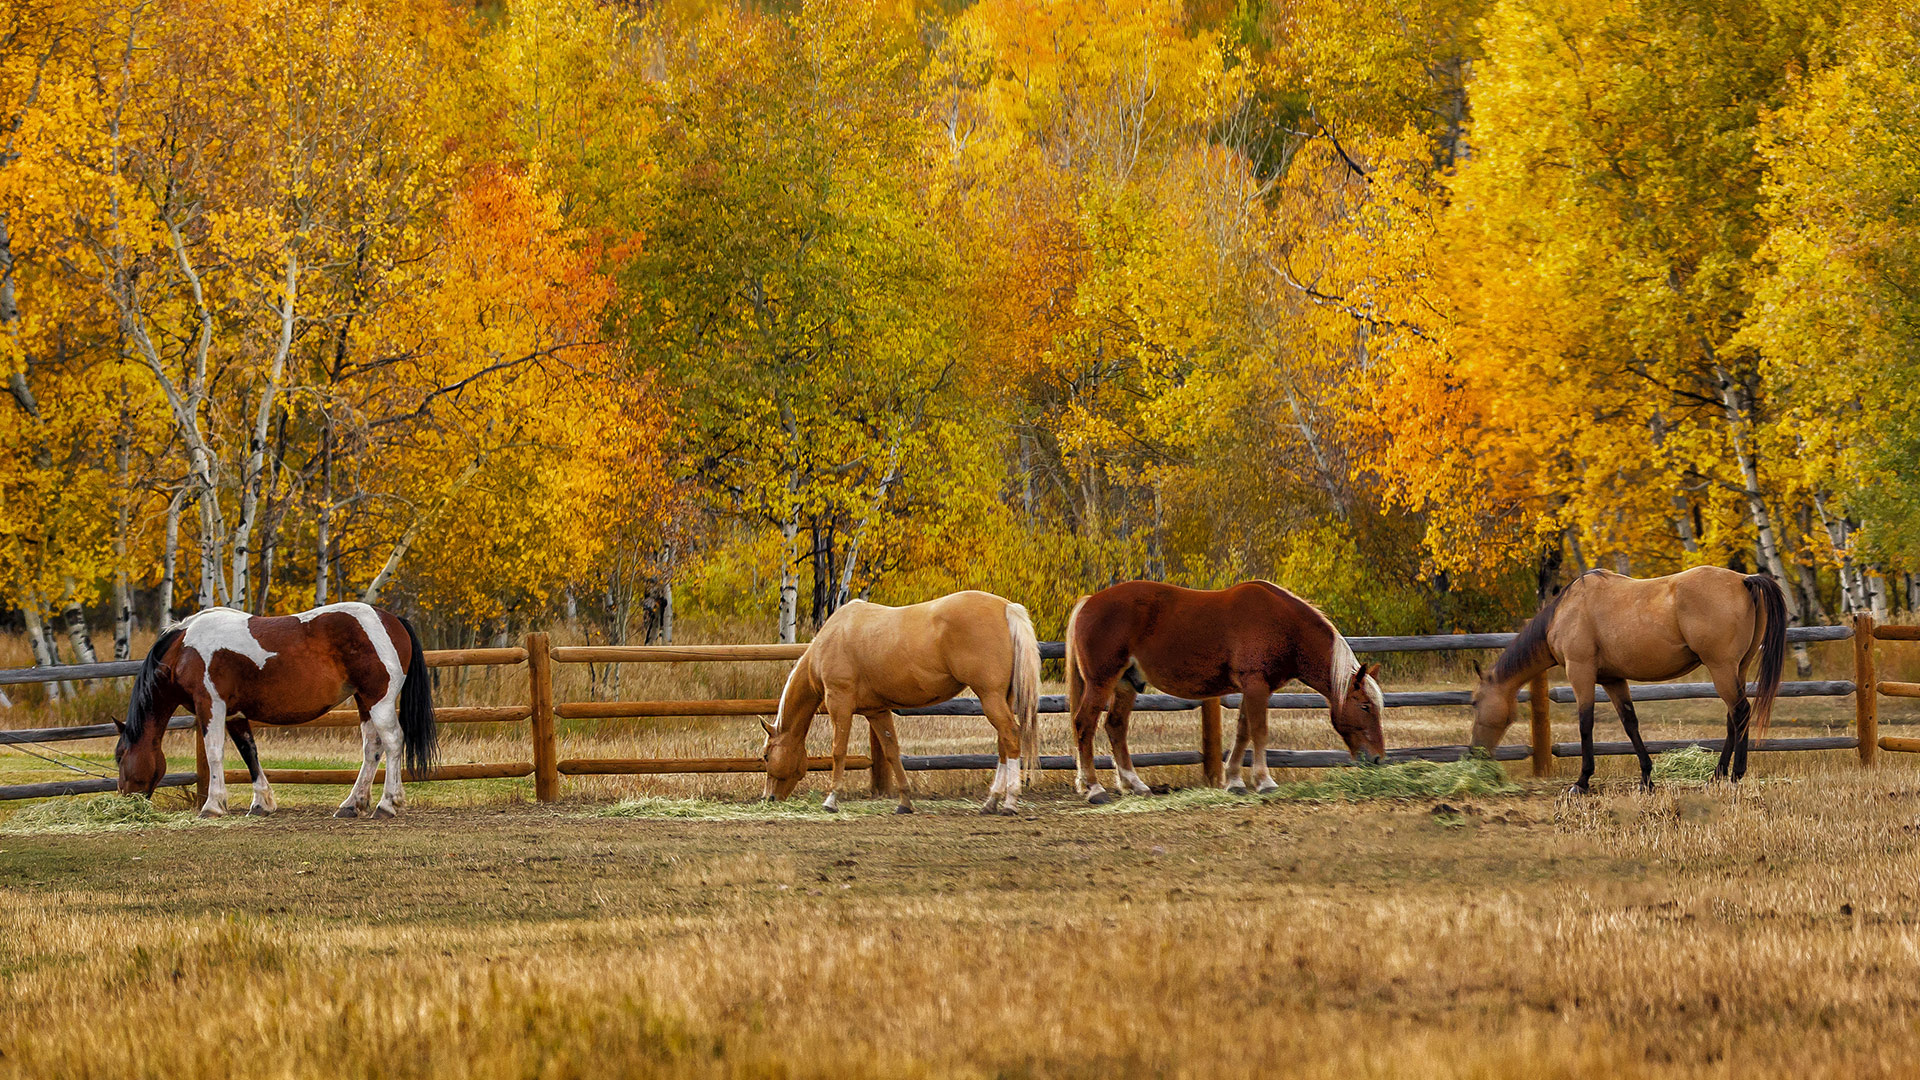 horses-homepage-banner-02